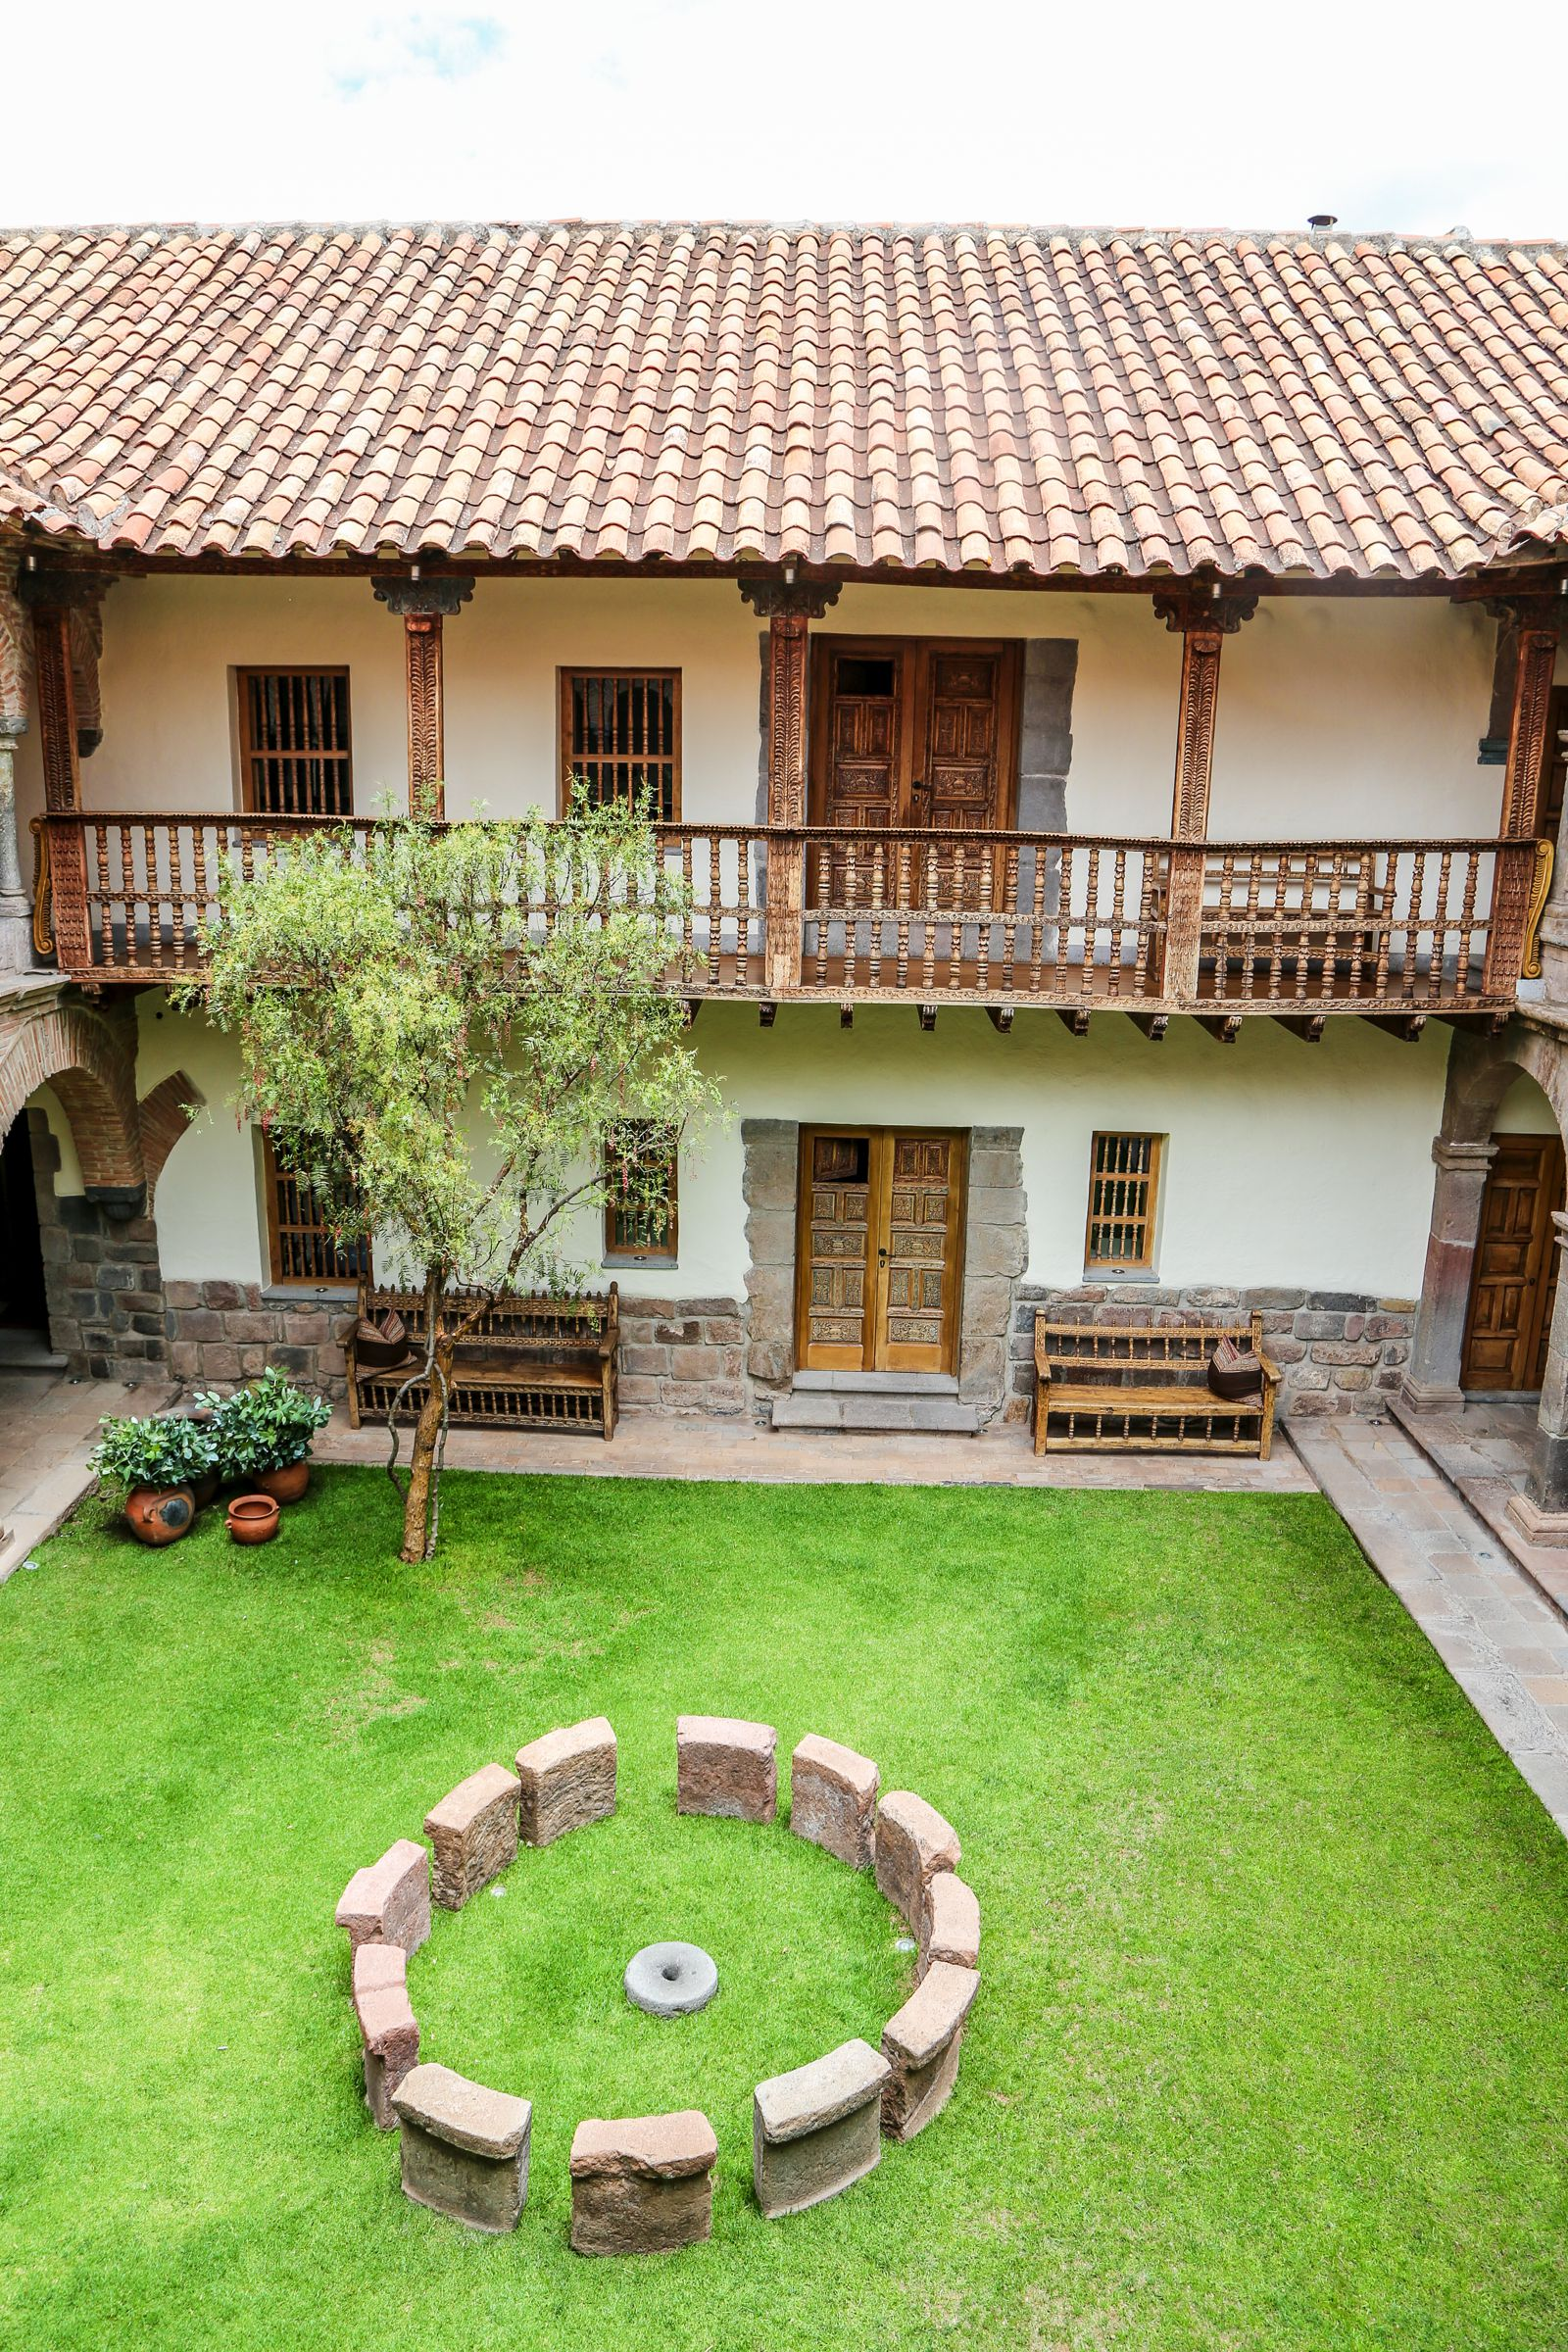 4 Amazing Ancient Inca Sights To See In Cusco And The Sacred Valley of the Incas (36)